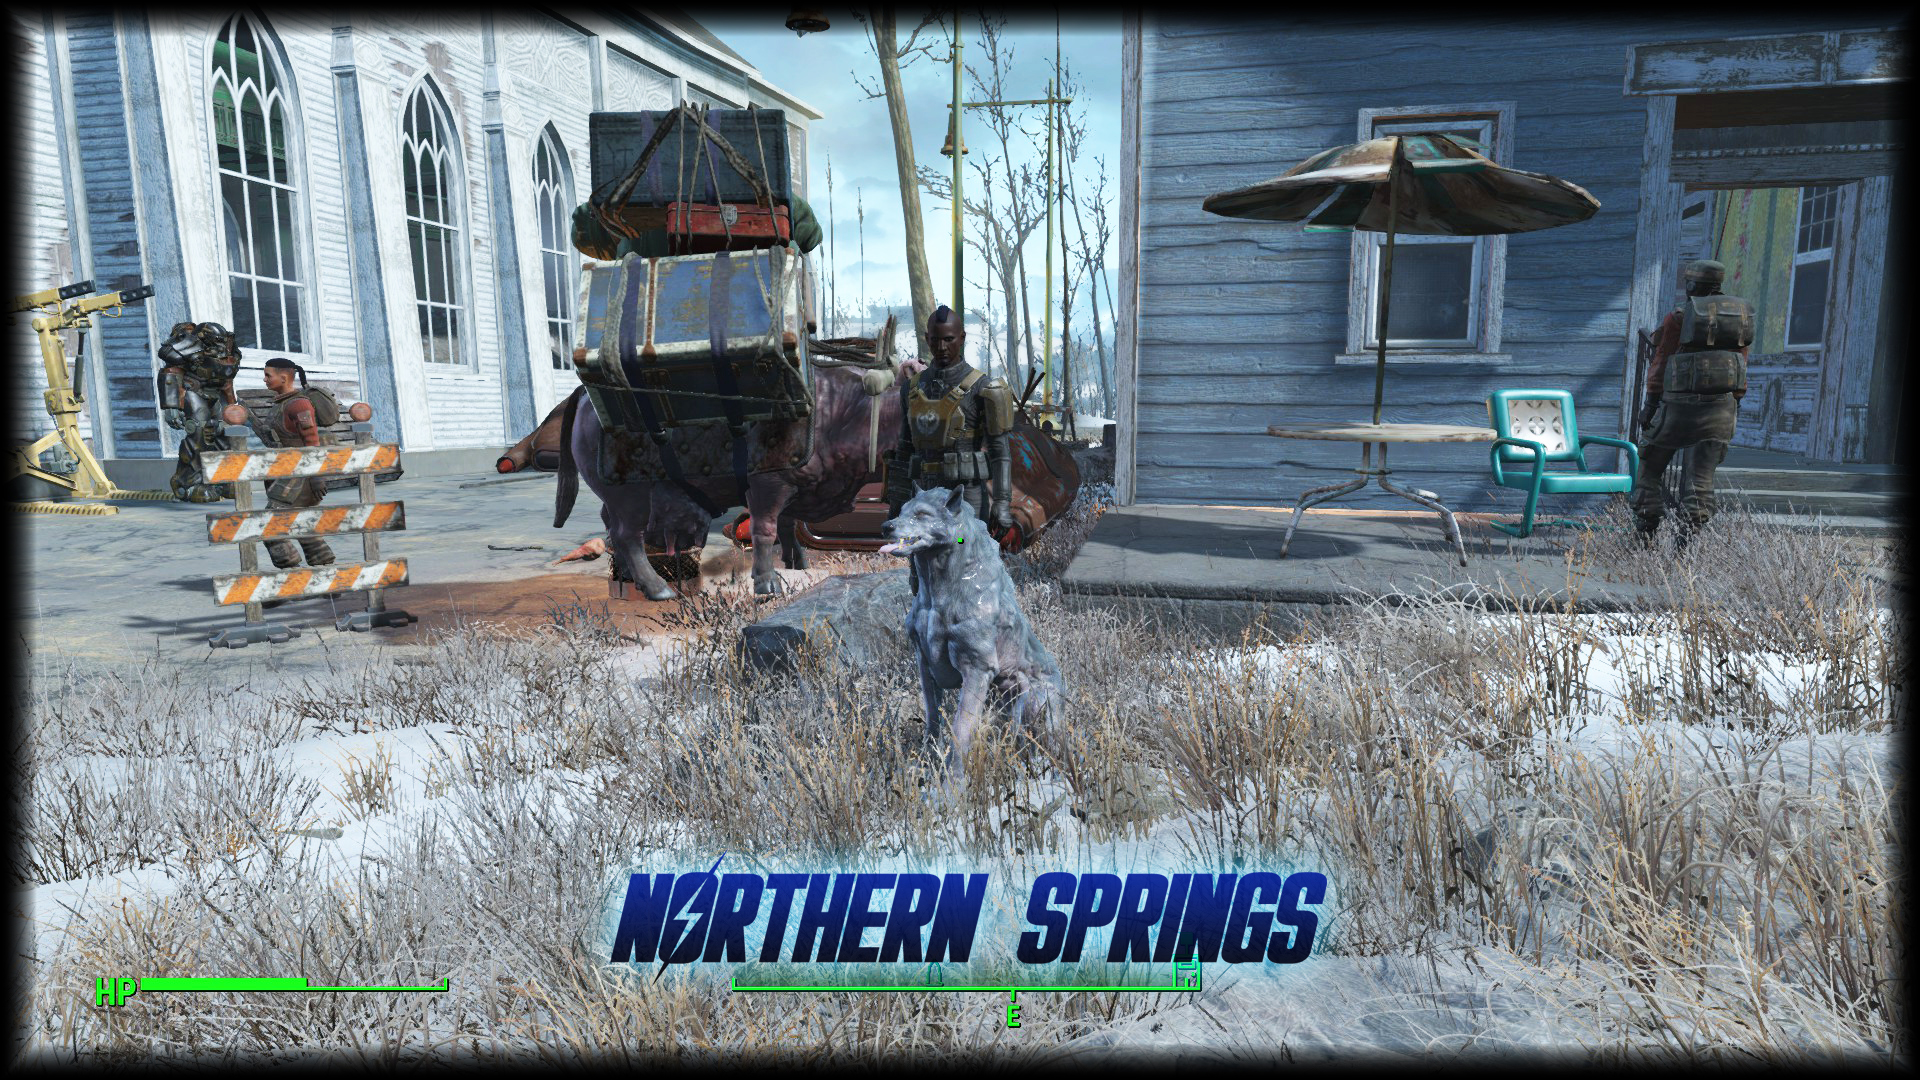 Fallout 4 mod Northern Springs takes you to a winter